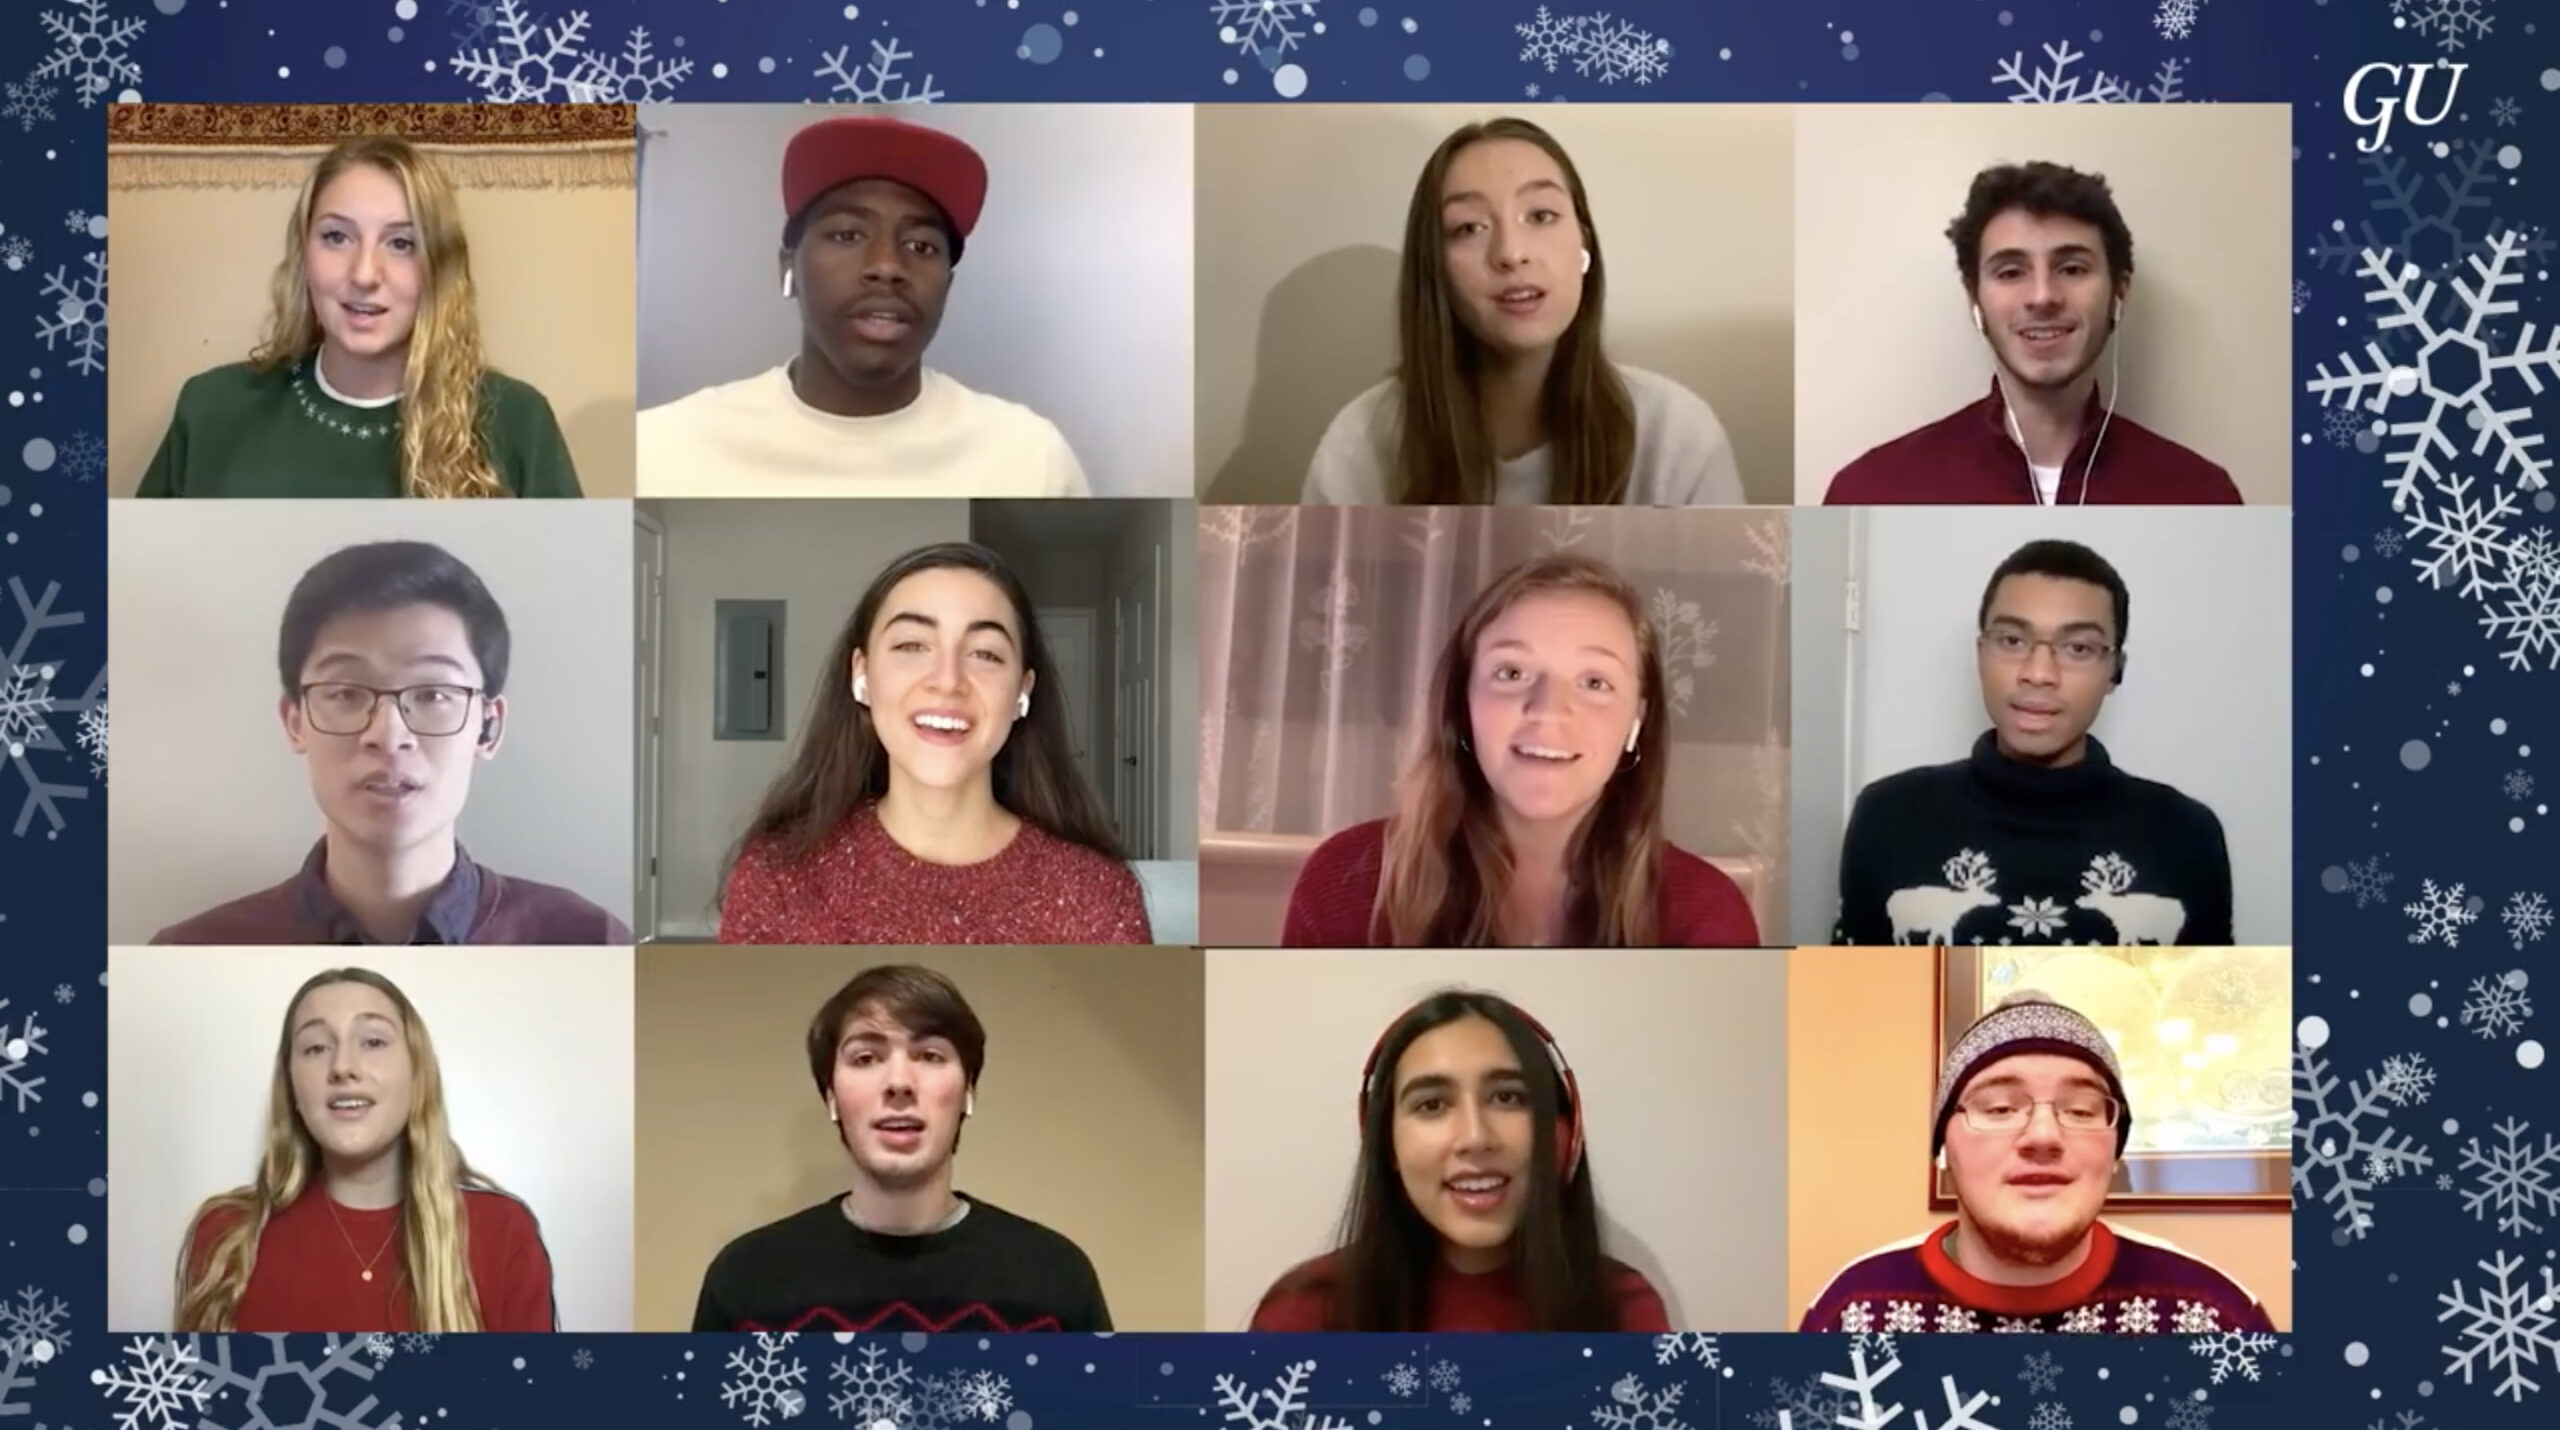 Georgetown University a cappella group performs as part of the 2020 virtual tree lighting.